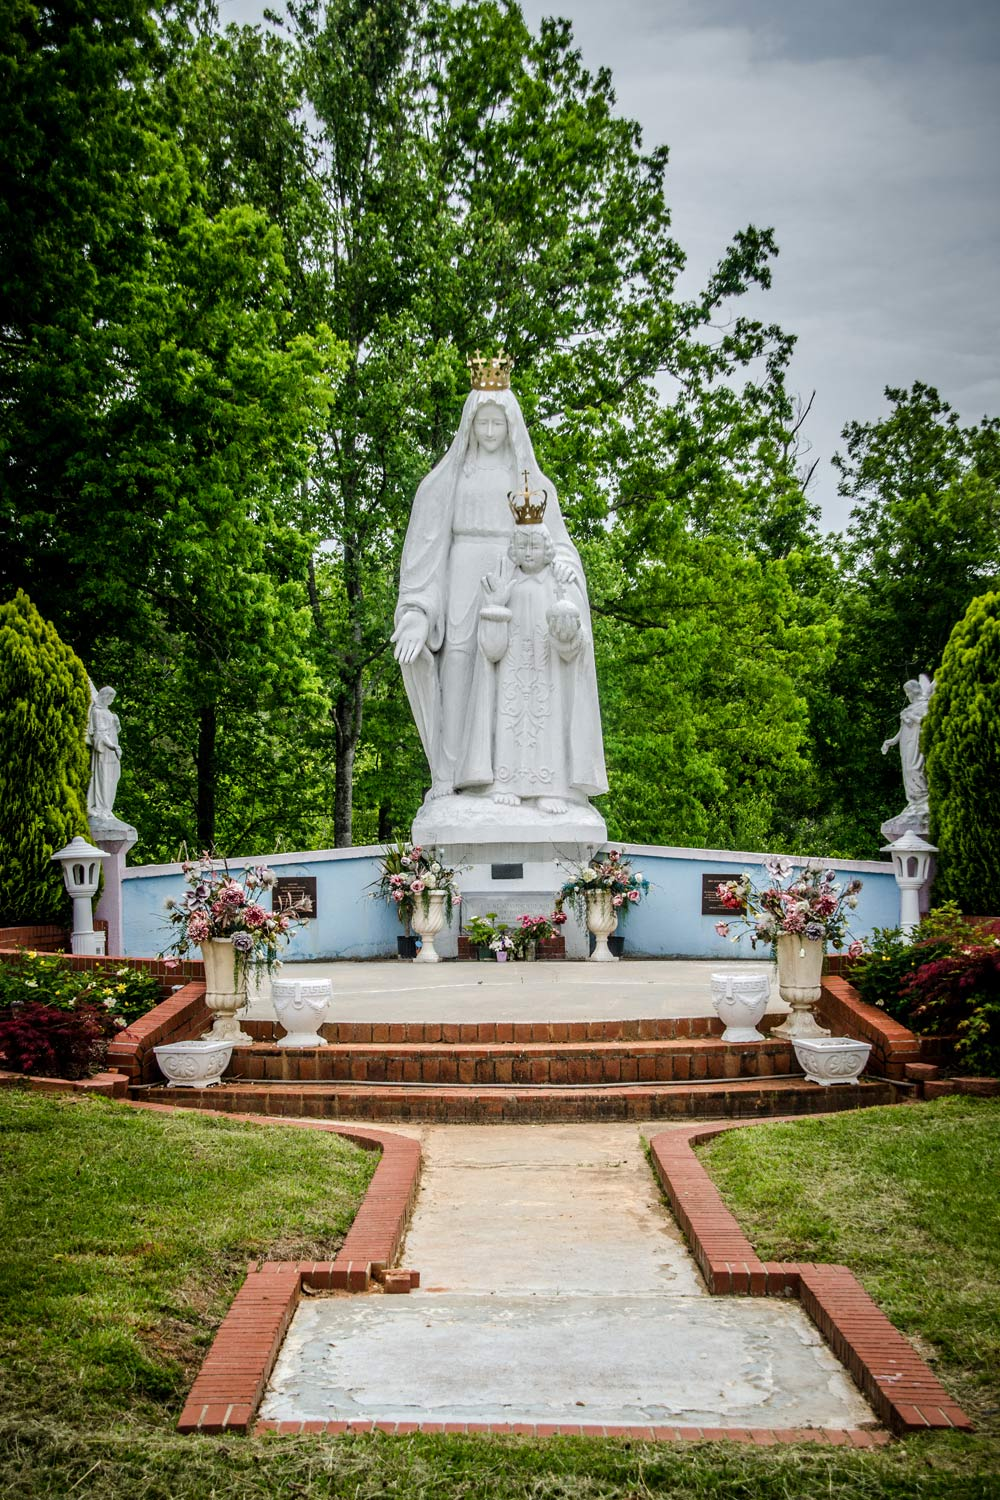 Our Lady of Vietnam near Greenville